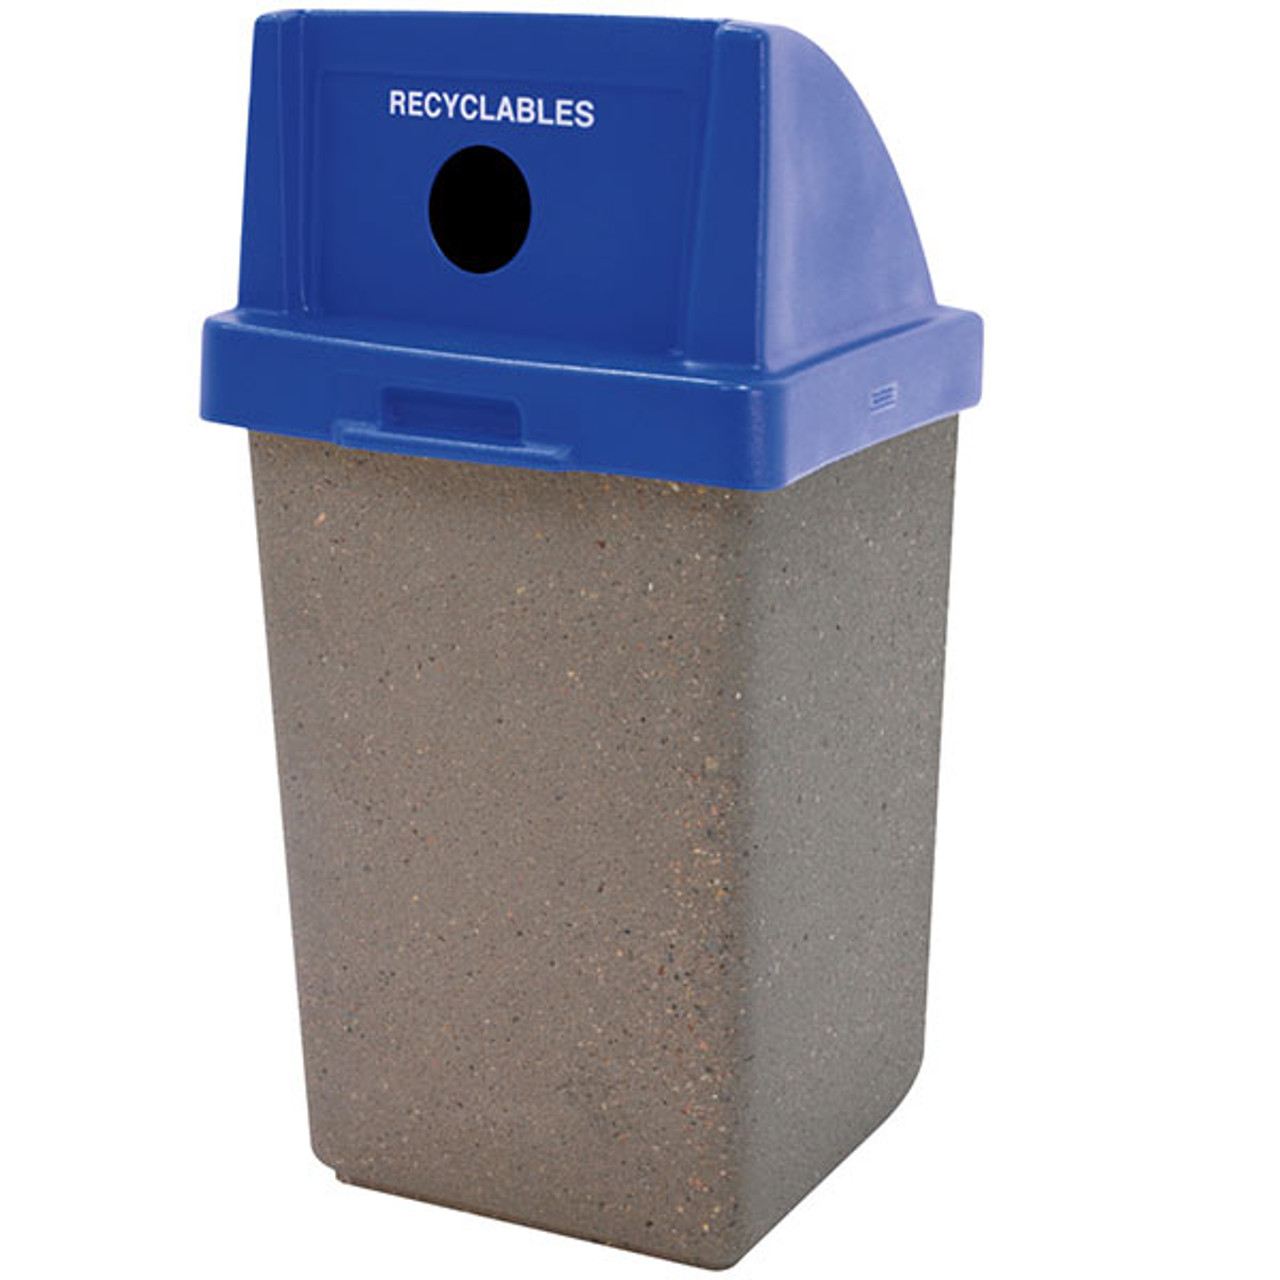 30 Gallon Concrete Recycling Top Outdoor Waste Receptacle TF1028 Weatherstone